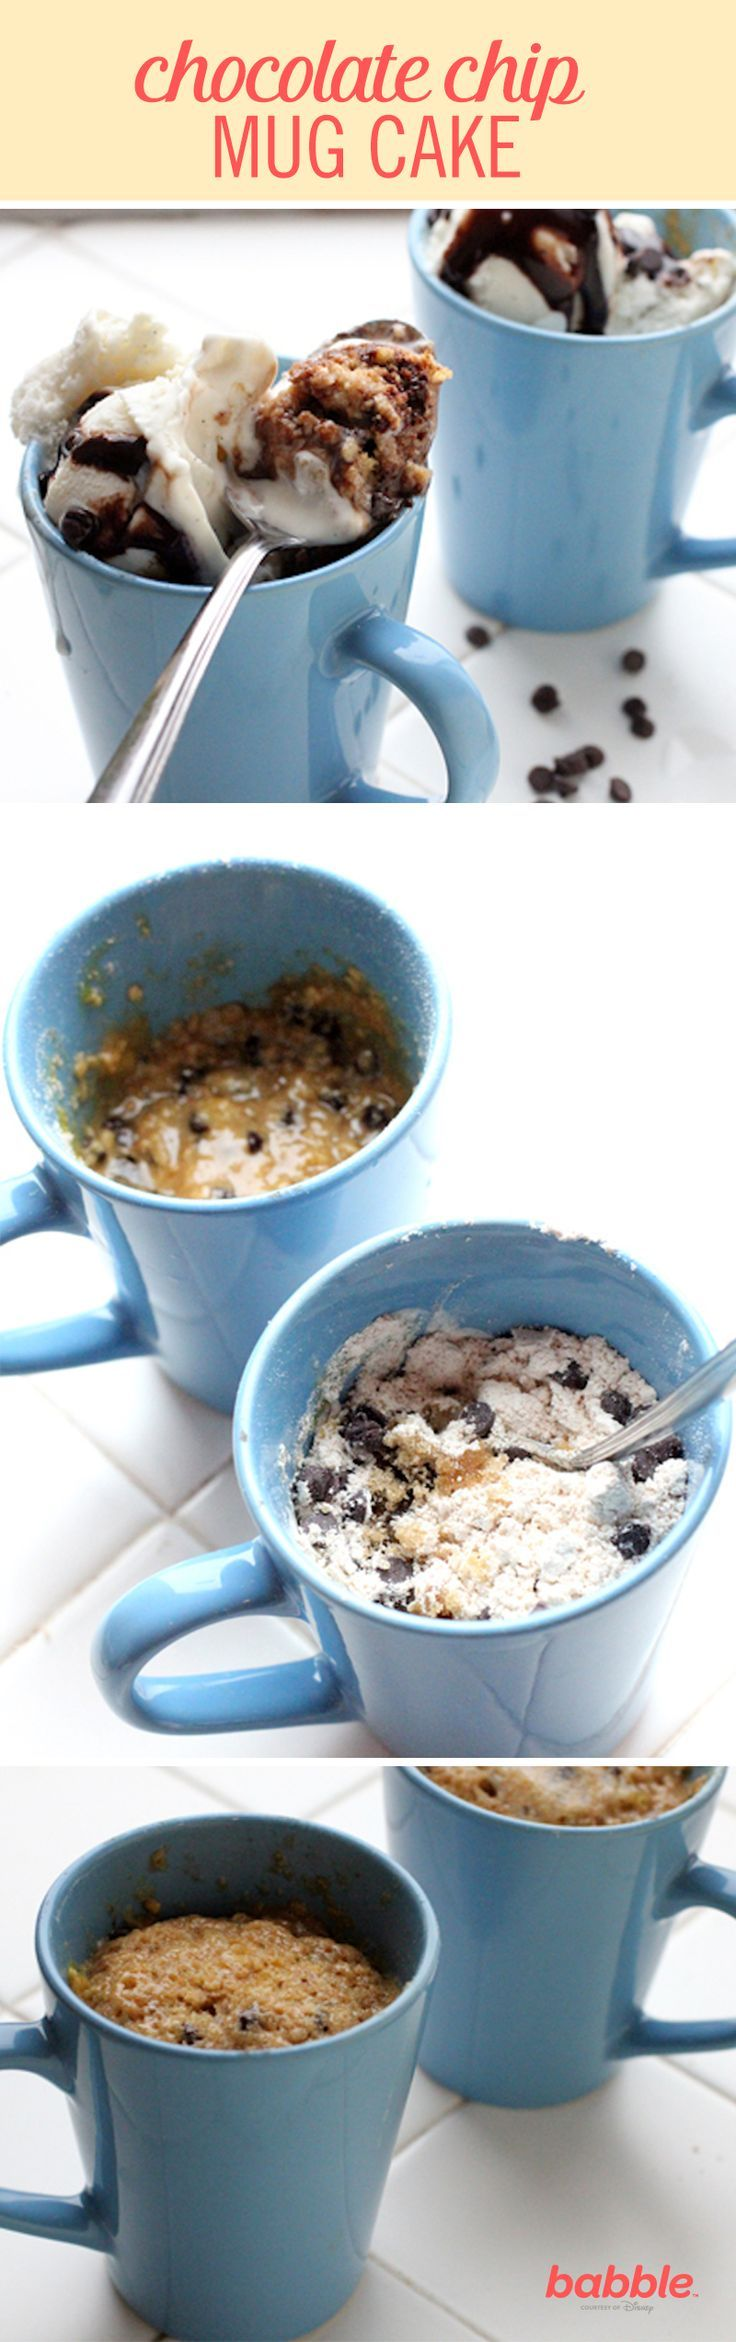 What better comfort food than this quick and easy mug cake that tastes just like chocolate chip cookie dough, and can be microwaved in less than two minutes? Grab an egg, brown sugar, flour, butter, and chocolate chips to create this melt-in-your-mouth Chocolate Chip Cookie Dough Mug Cake. Click for the recipe.